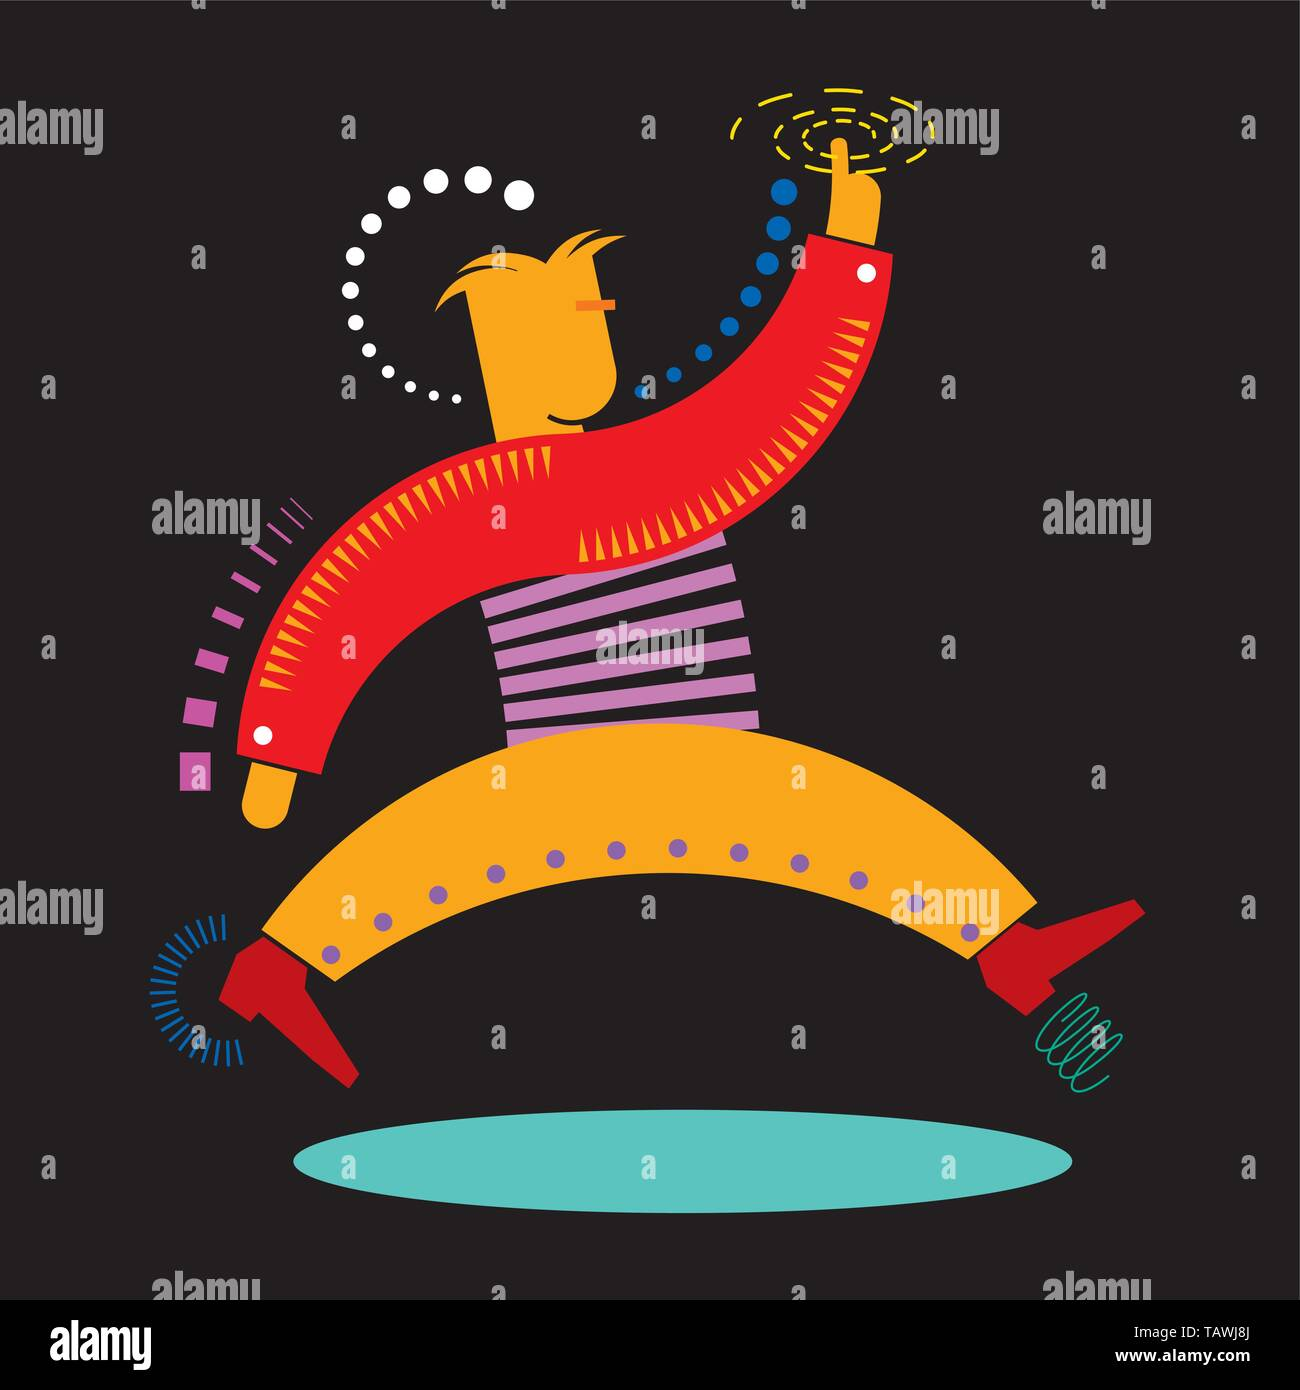 Illustration of the authentic dinamic man. Vector. eps10 - Stock Vector